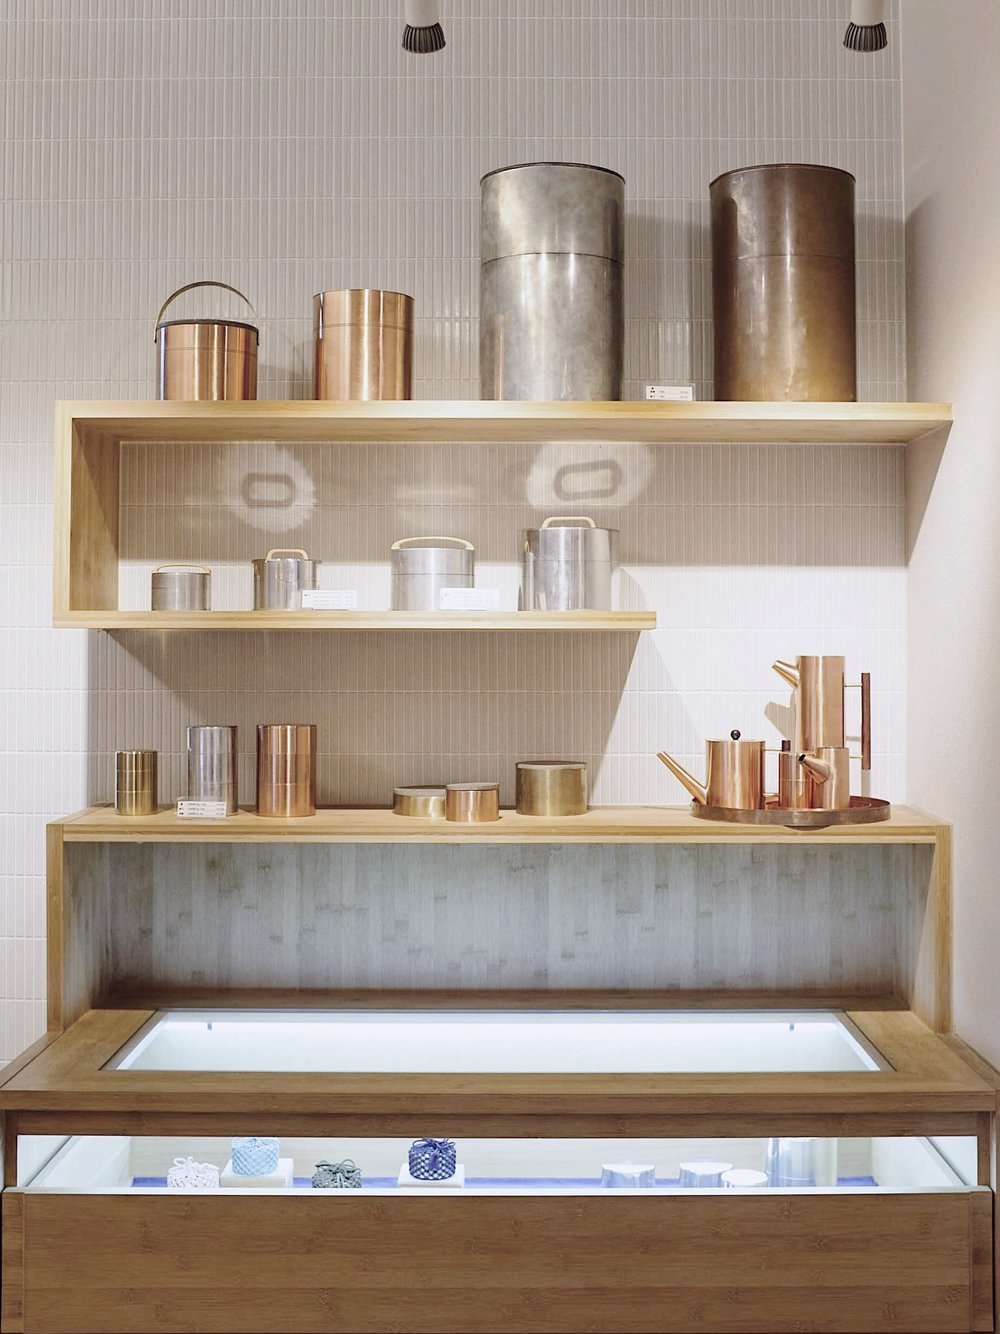 There is a multitude of different sizes and variations of Kaikado objects. Placed on the very top shelf are the oldest tea caddies with the weathered surface of the copper caddy appearing to be a deep, matte brown.